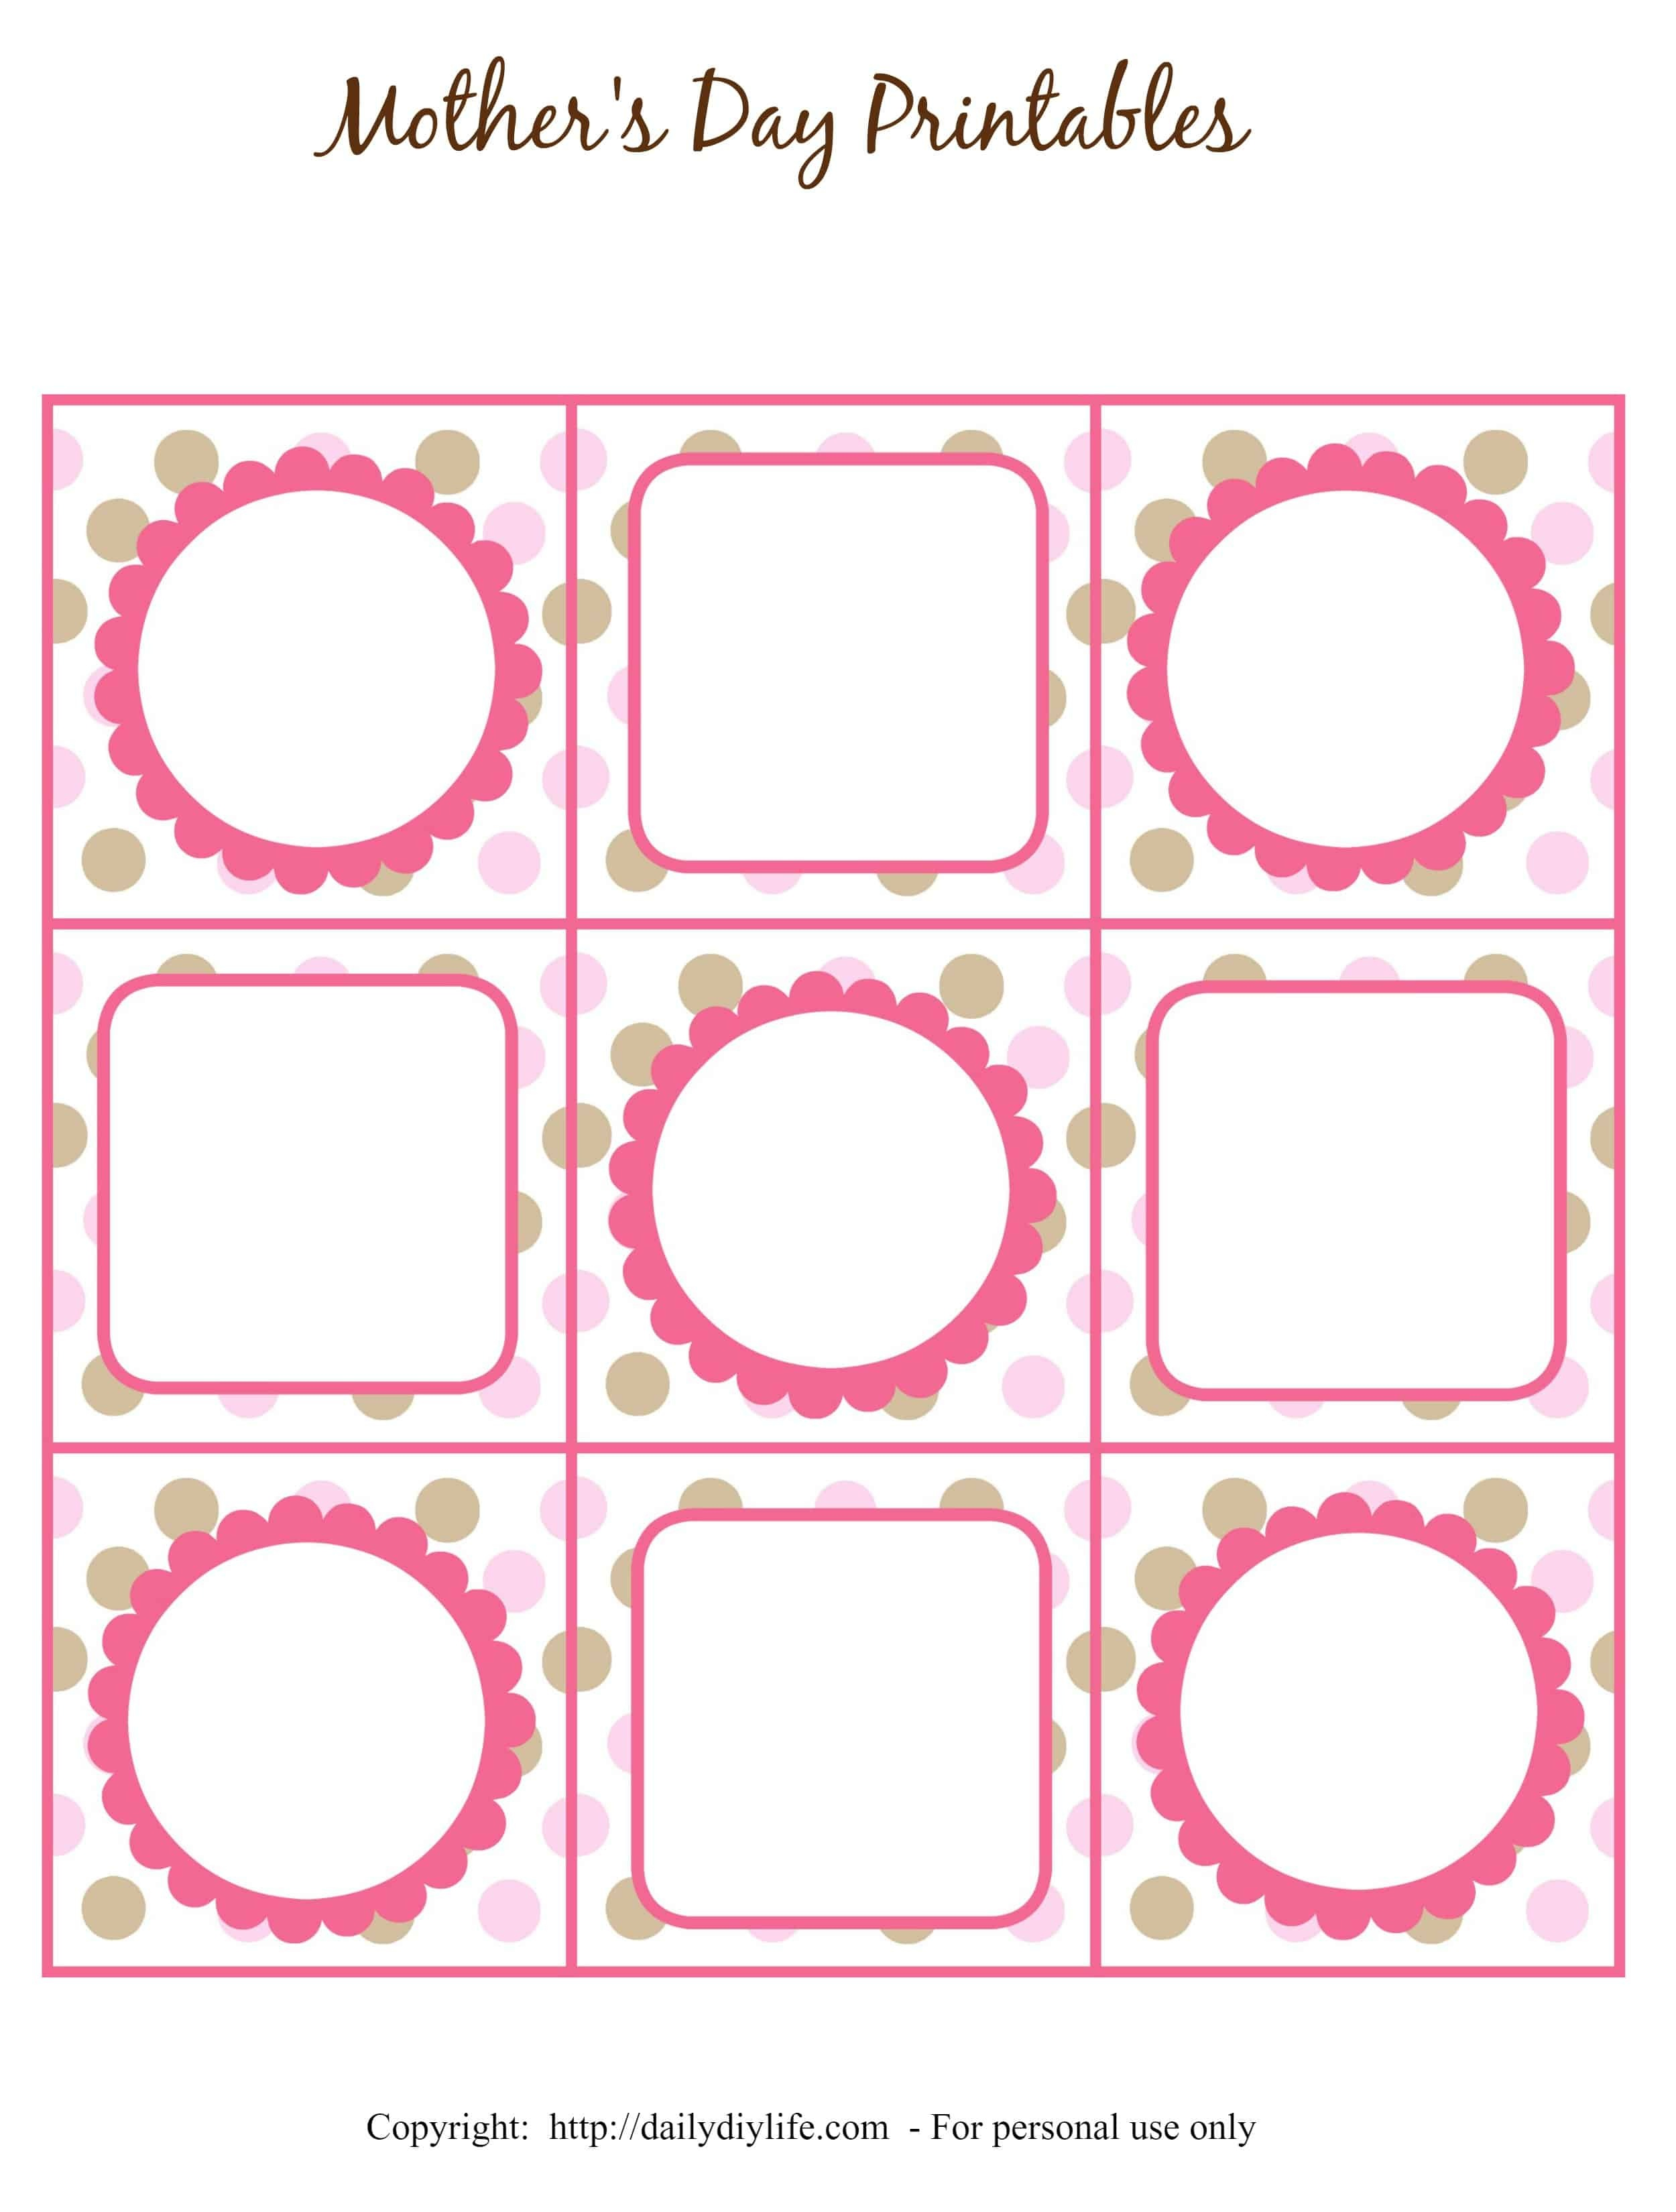 Mother's Day Free Printable Gift Tags Or Cupcake Toppers - Free Printable Favor Tags